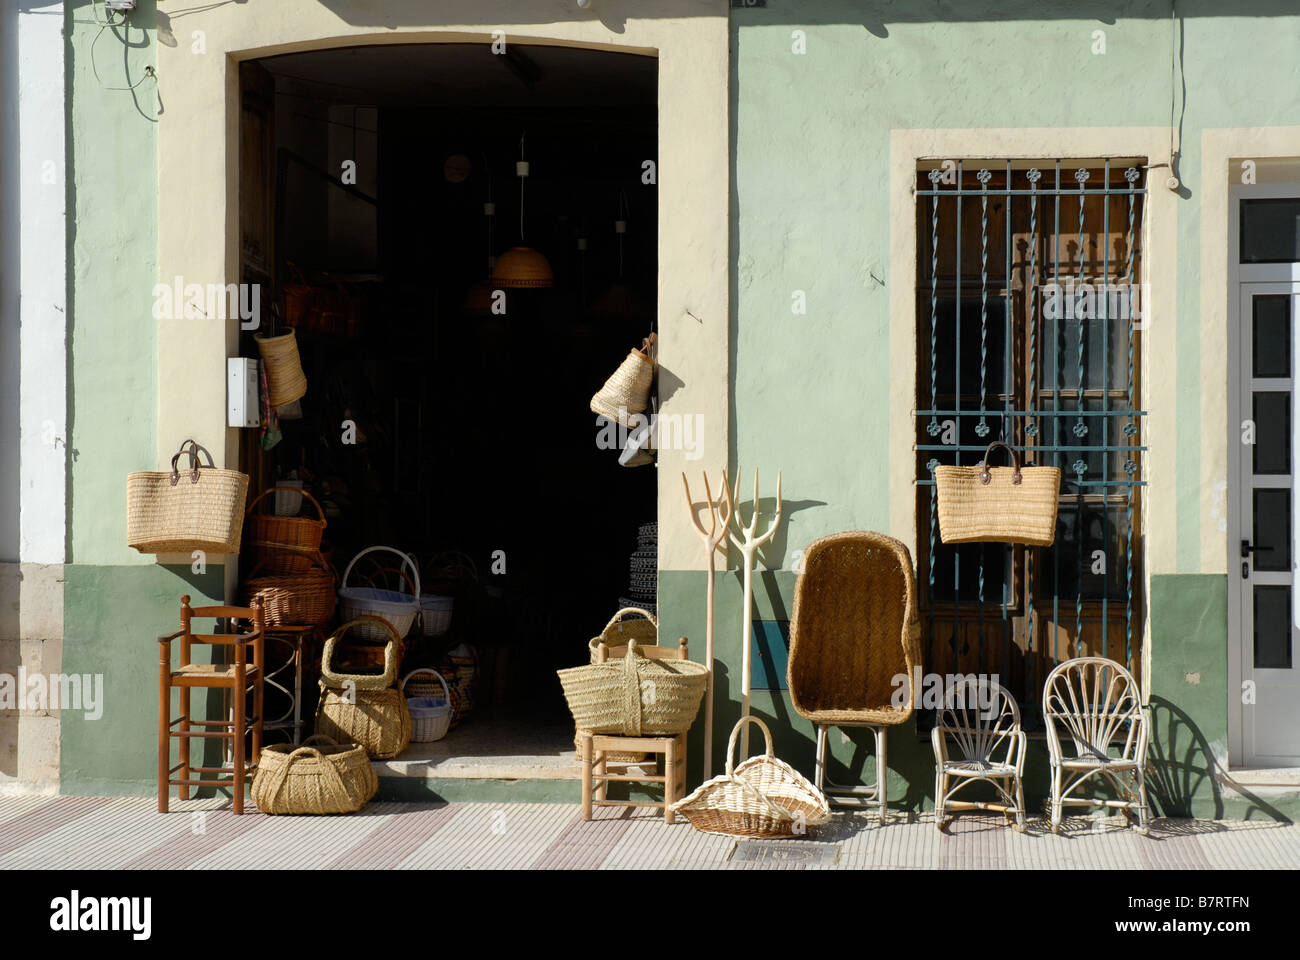 Souvenir Shop Selling Traditional Spanish Baskets And Cane Furniture Stock Photo Alamy